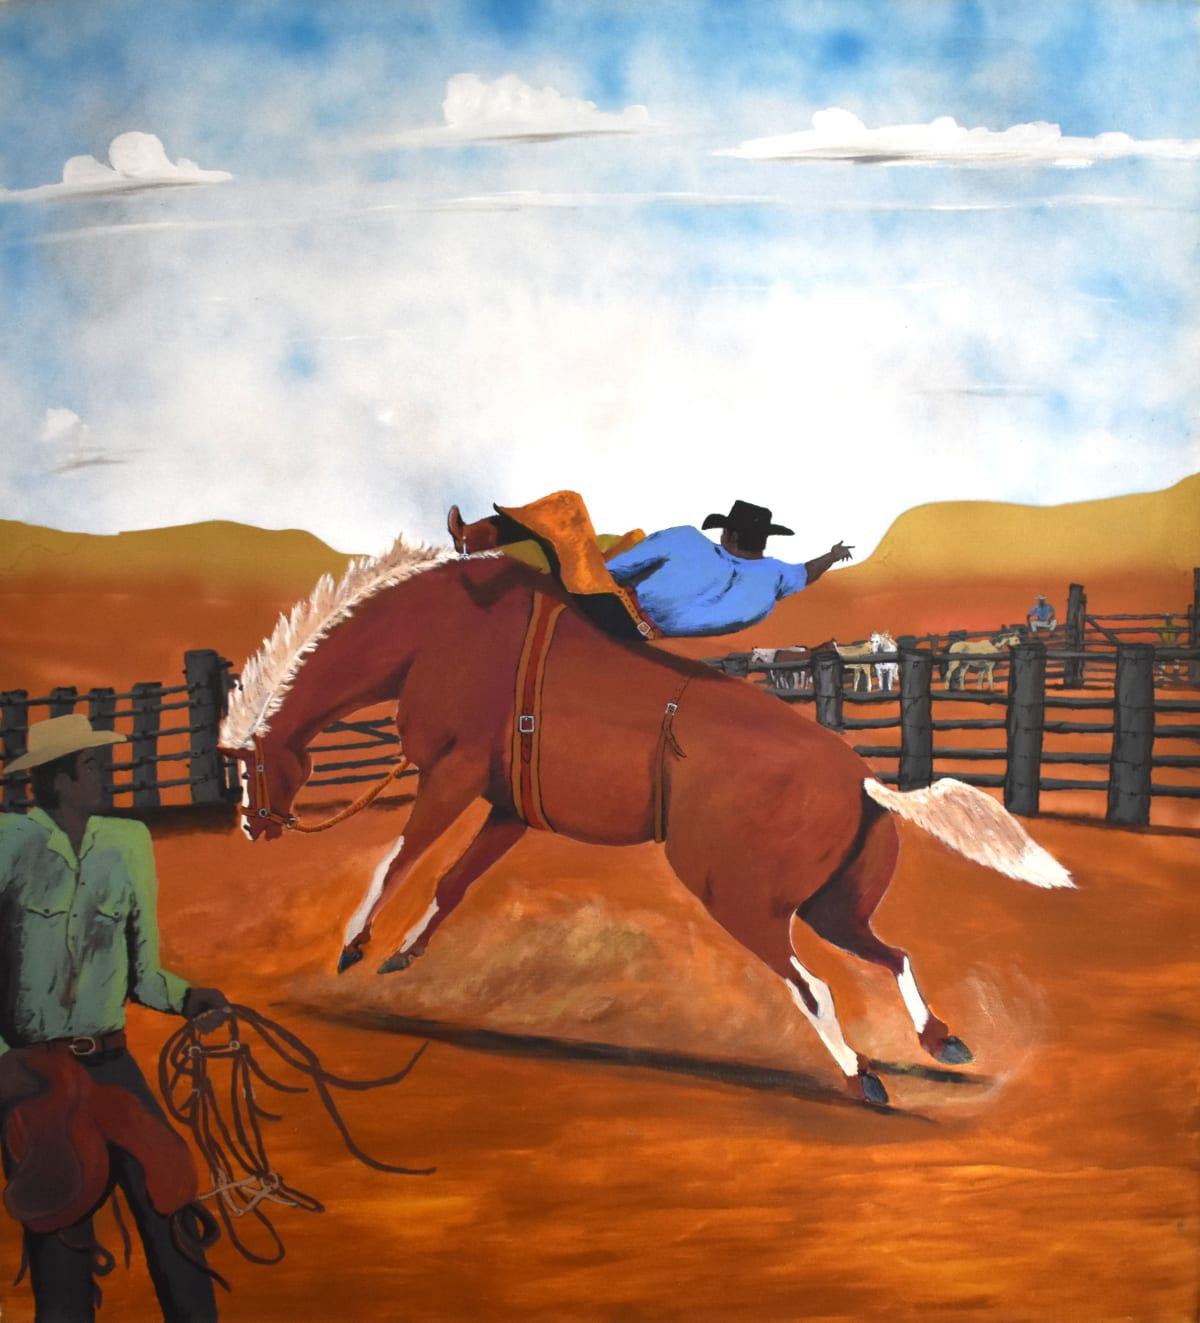 Mervyn Street The young men nominate to ride in the Saddle Bronc event, 2016 Acrylic on canvas 133 x 121 cm